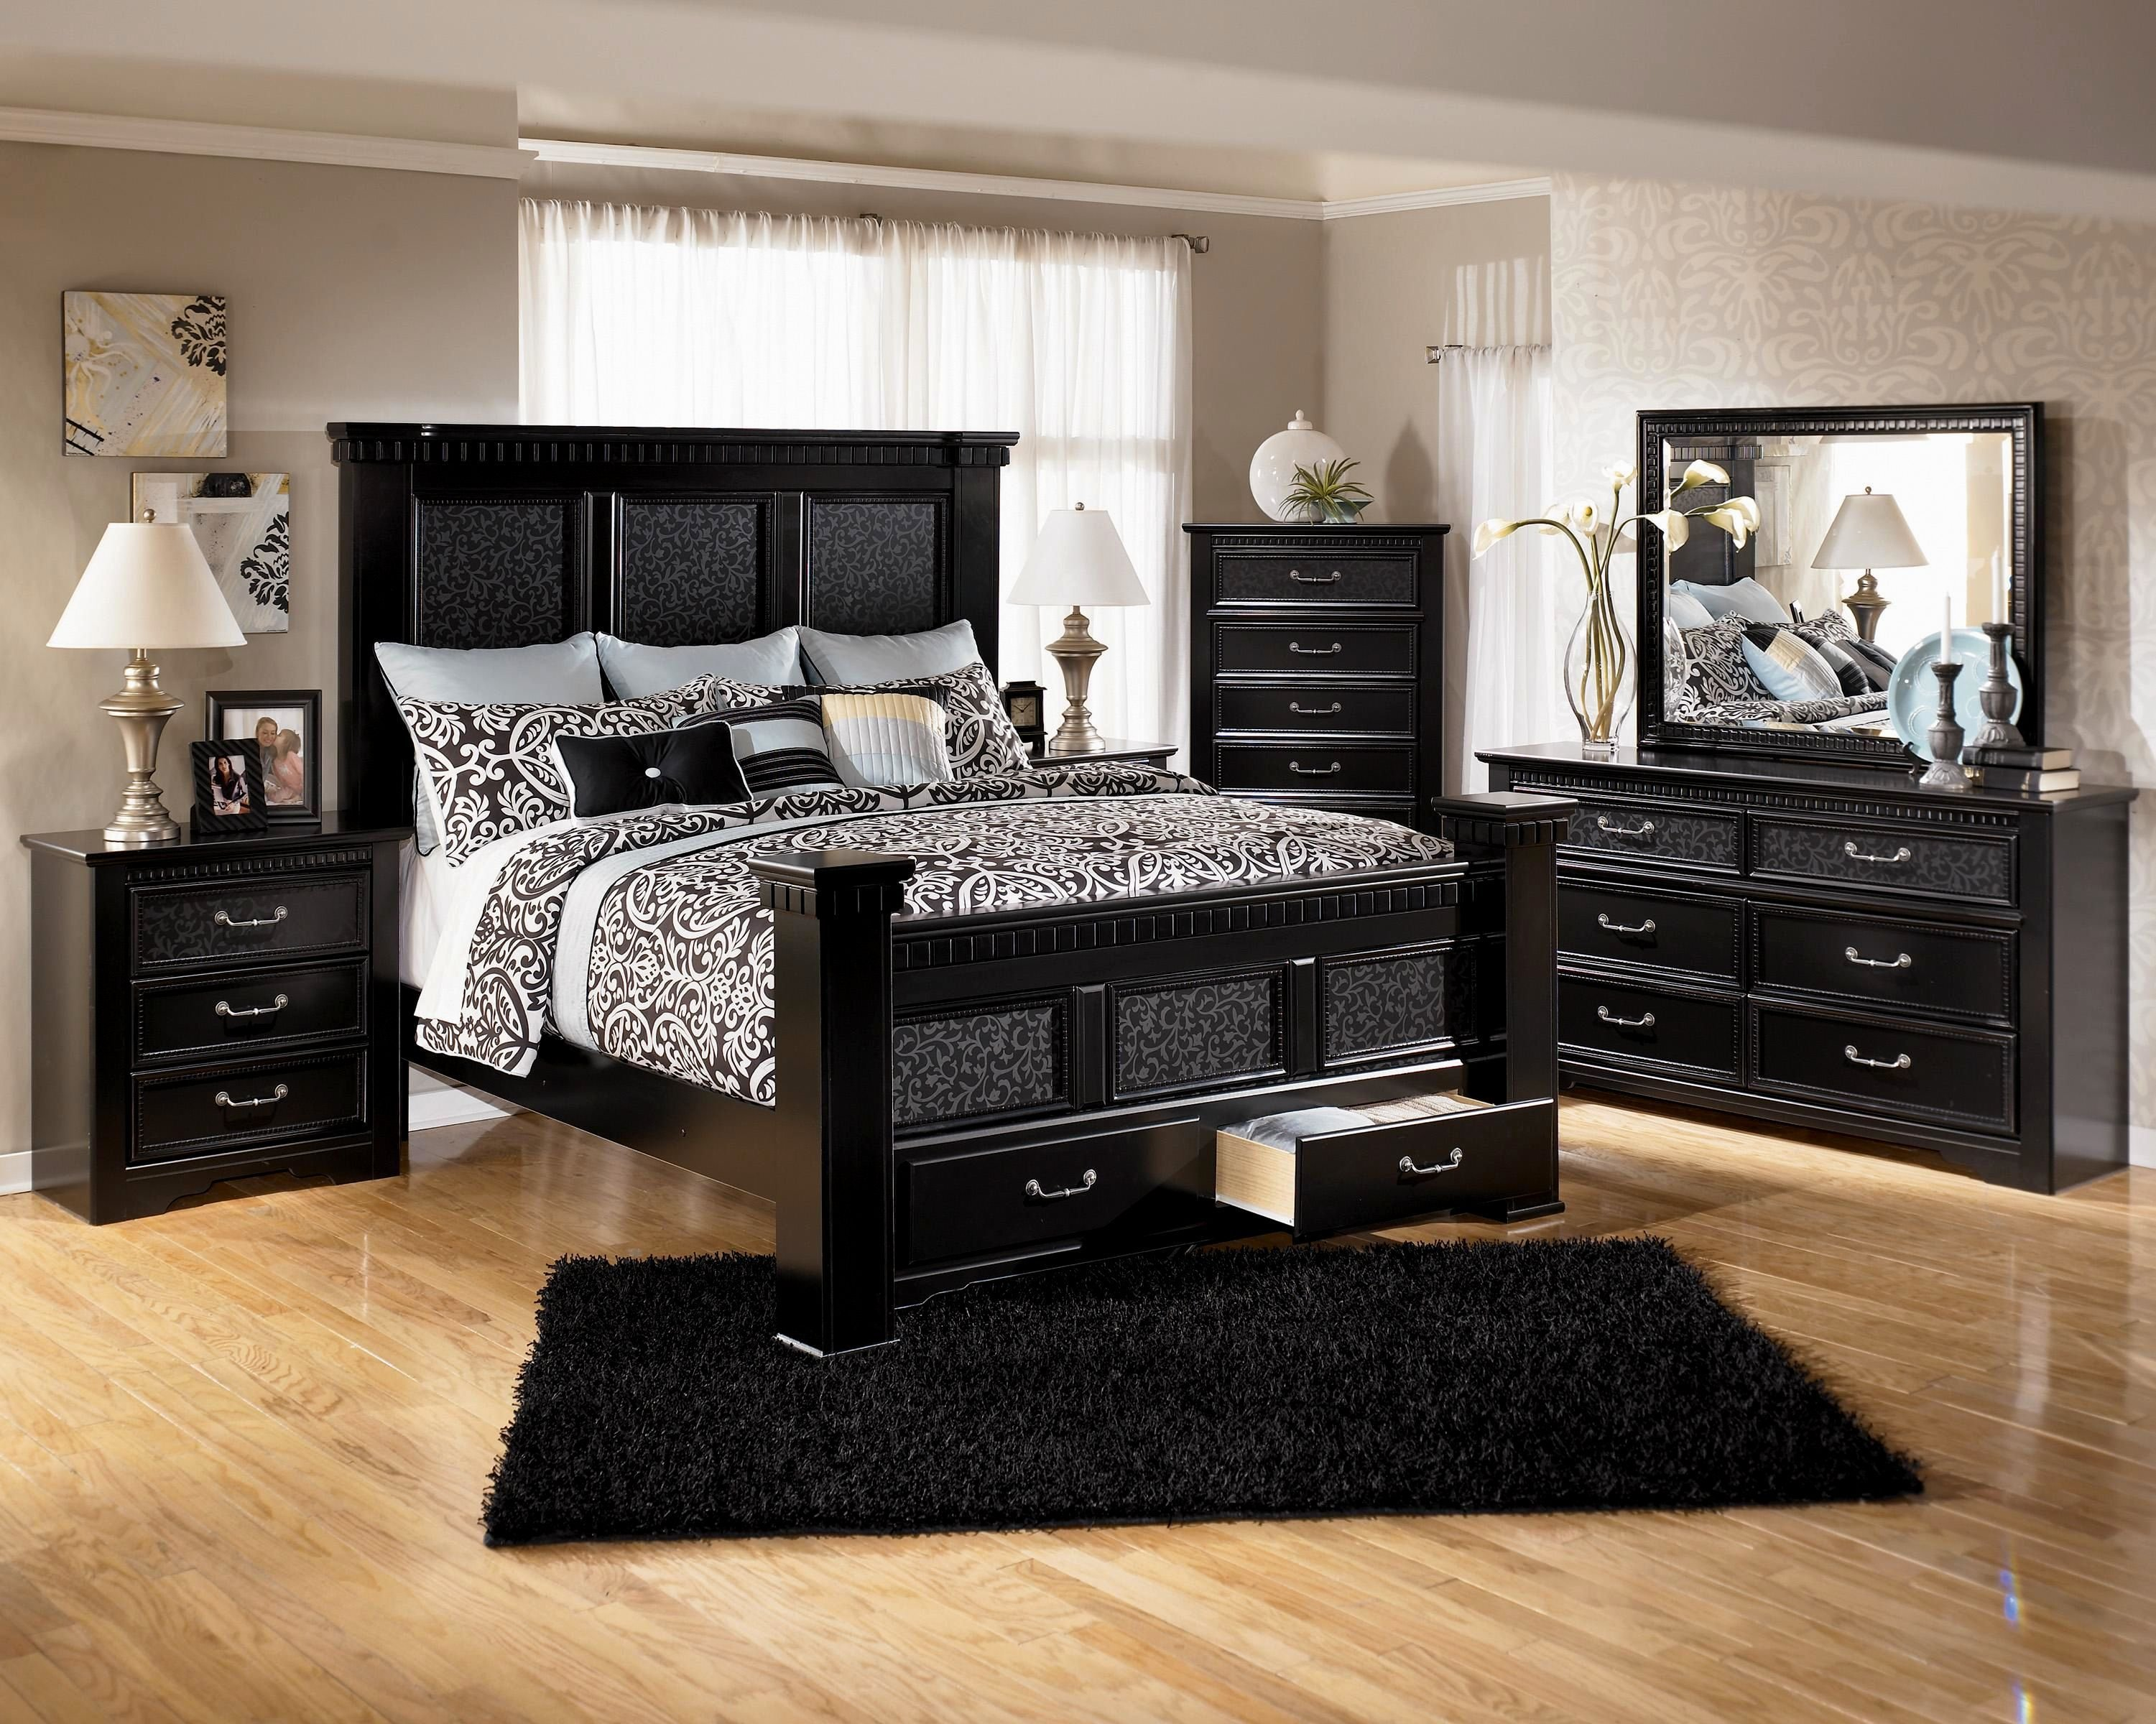 Best Awesome Bedroom Sets On Sale Model Bedroom Decorating With Pictures